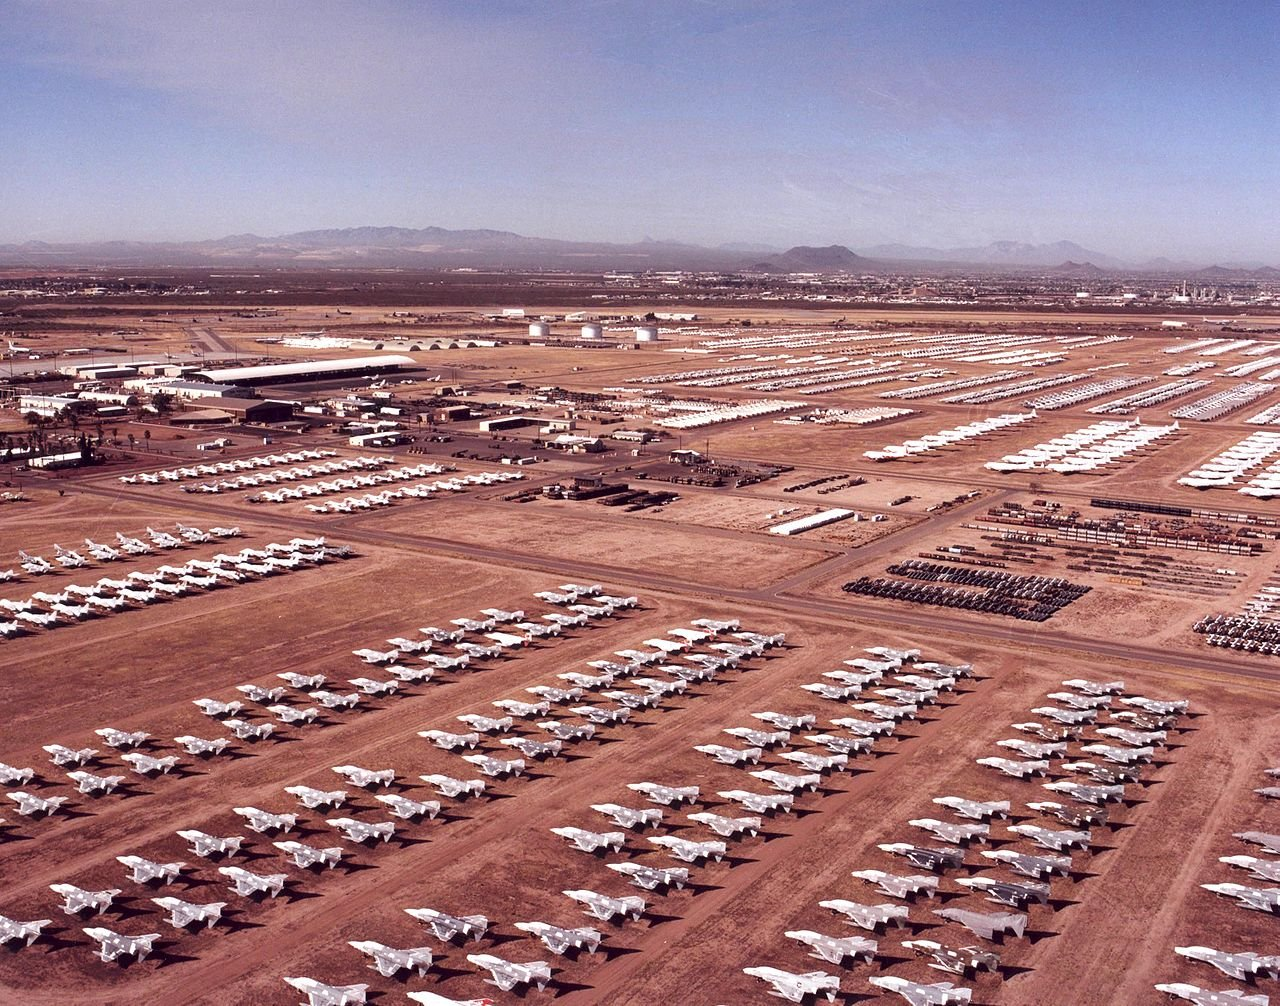 The 'Boneyard' at Davis Monthan Air Force Base (Source: Davis-Monthan Air Force base)